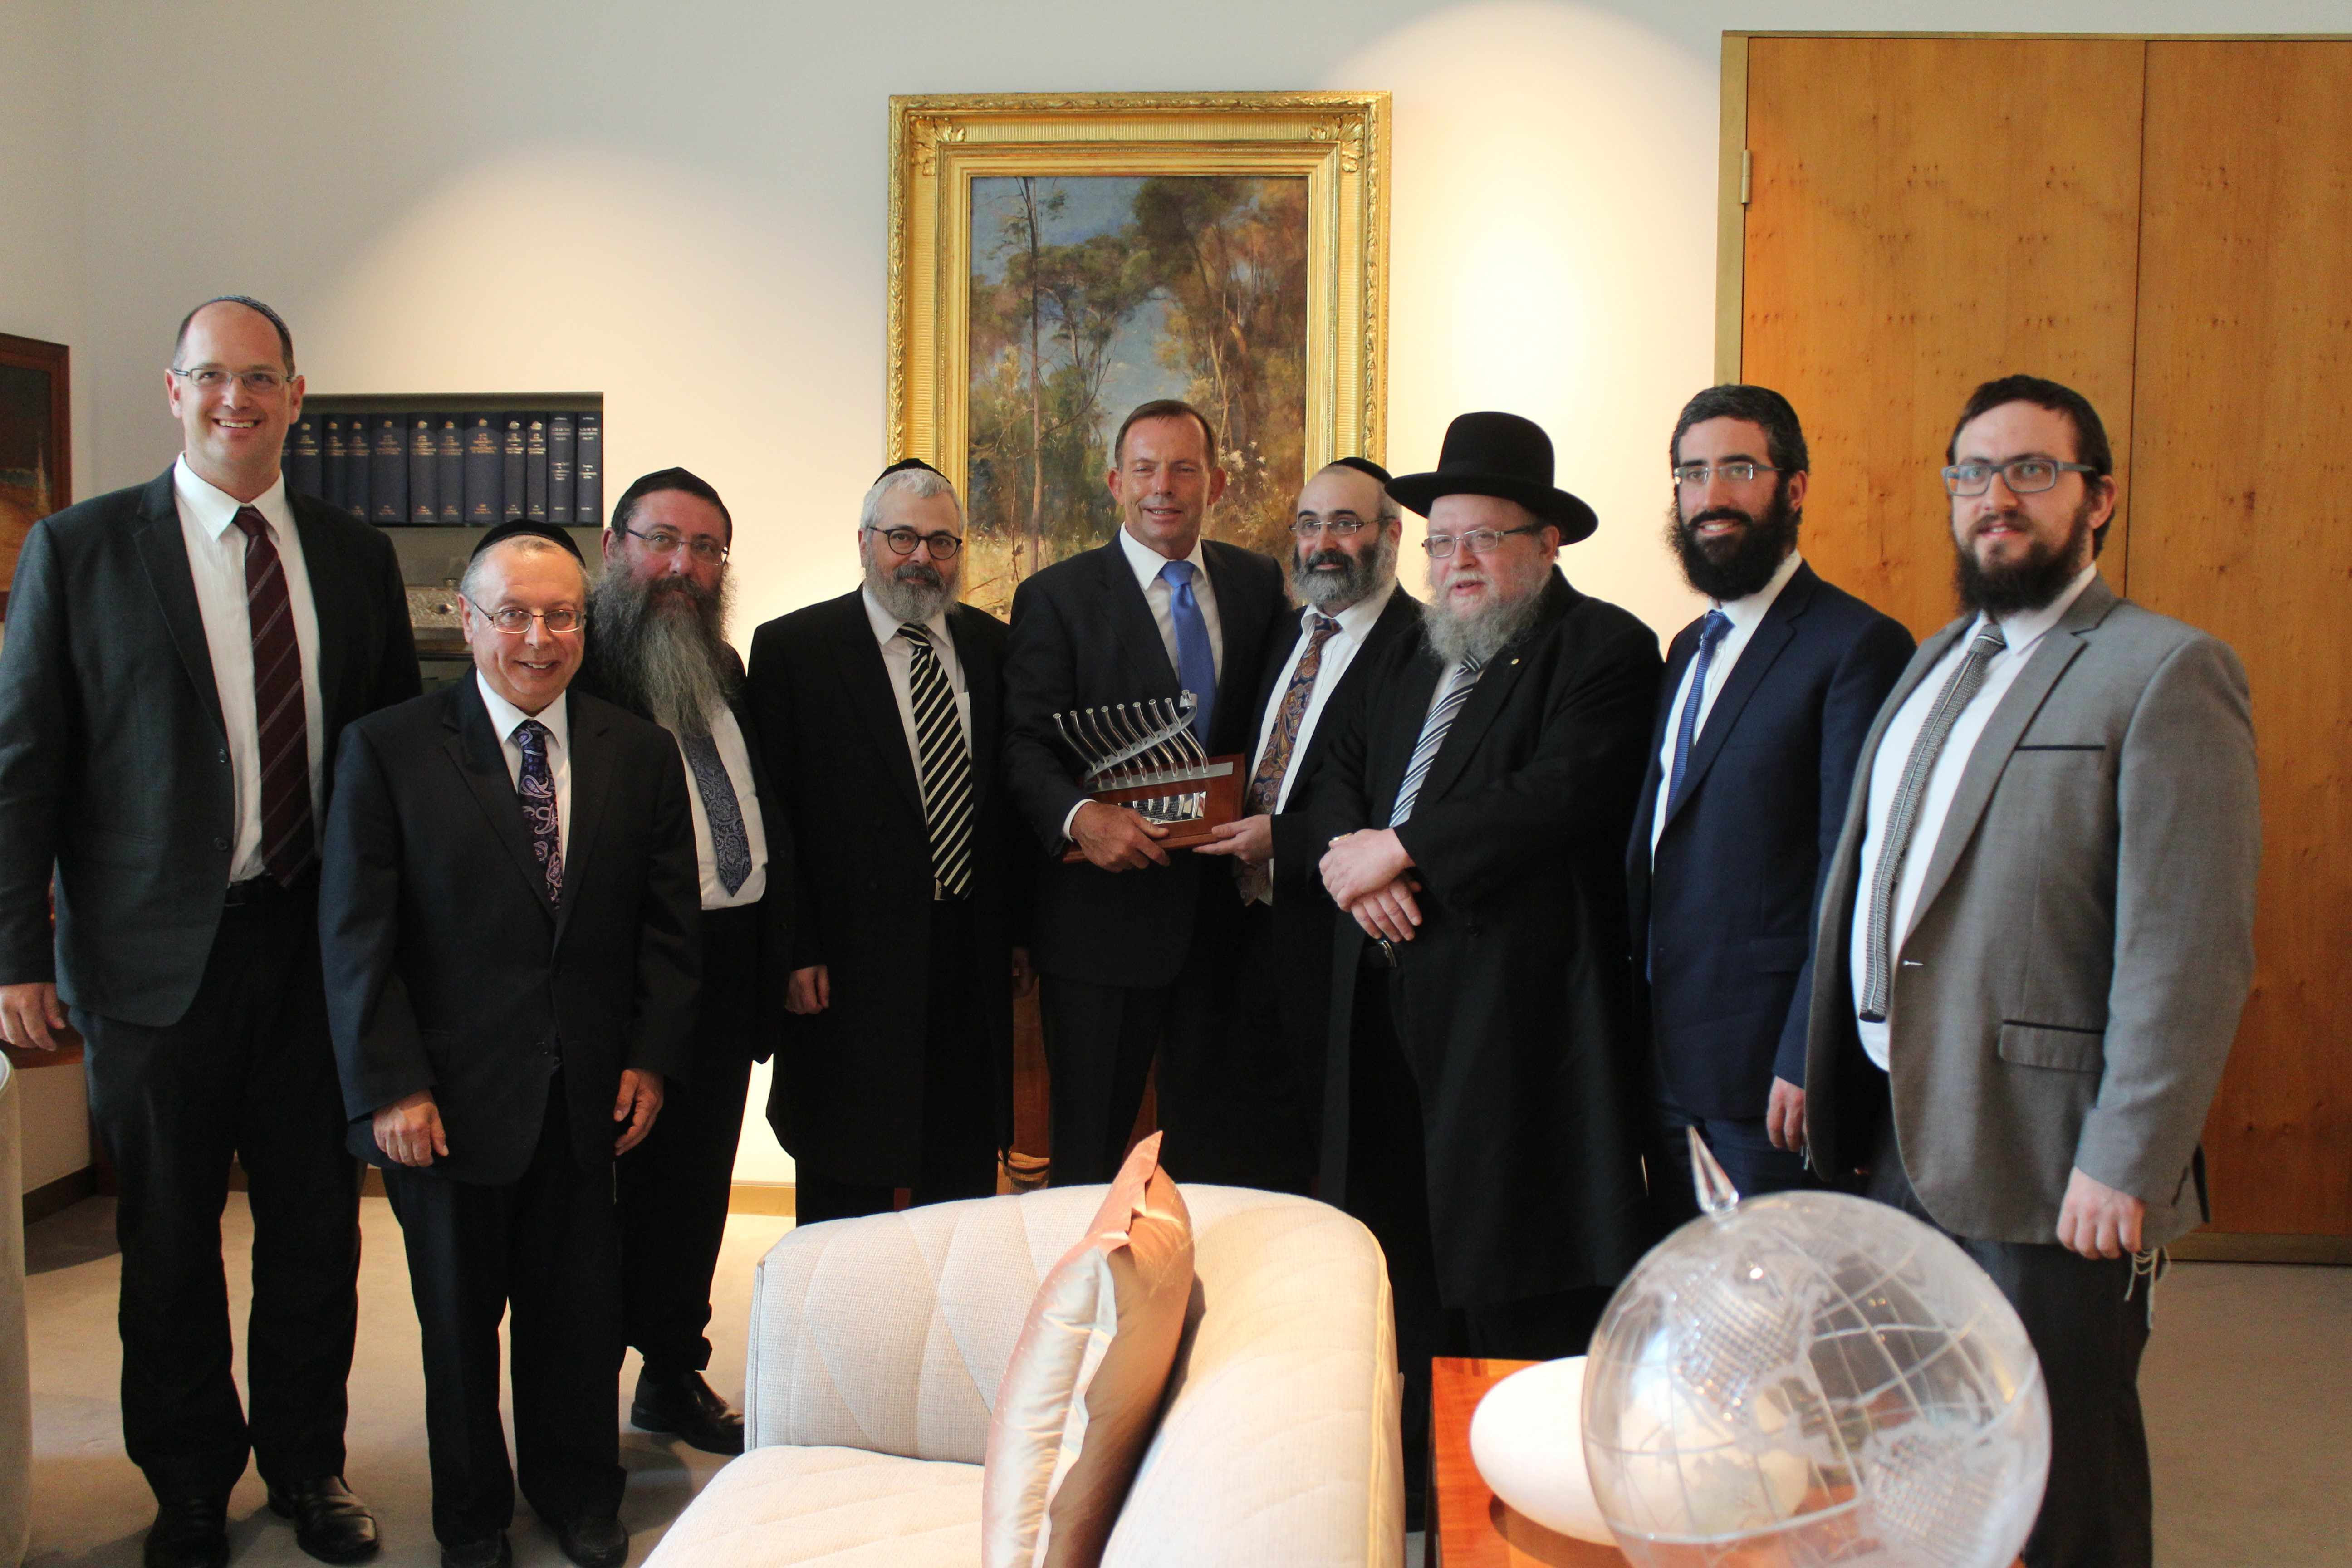 Rabbi's Group Photo with PM copy 2.jpg